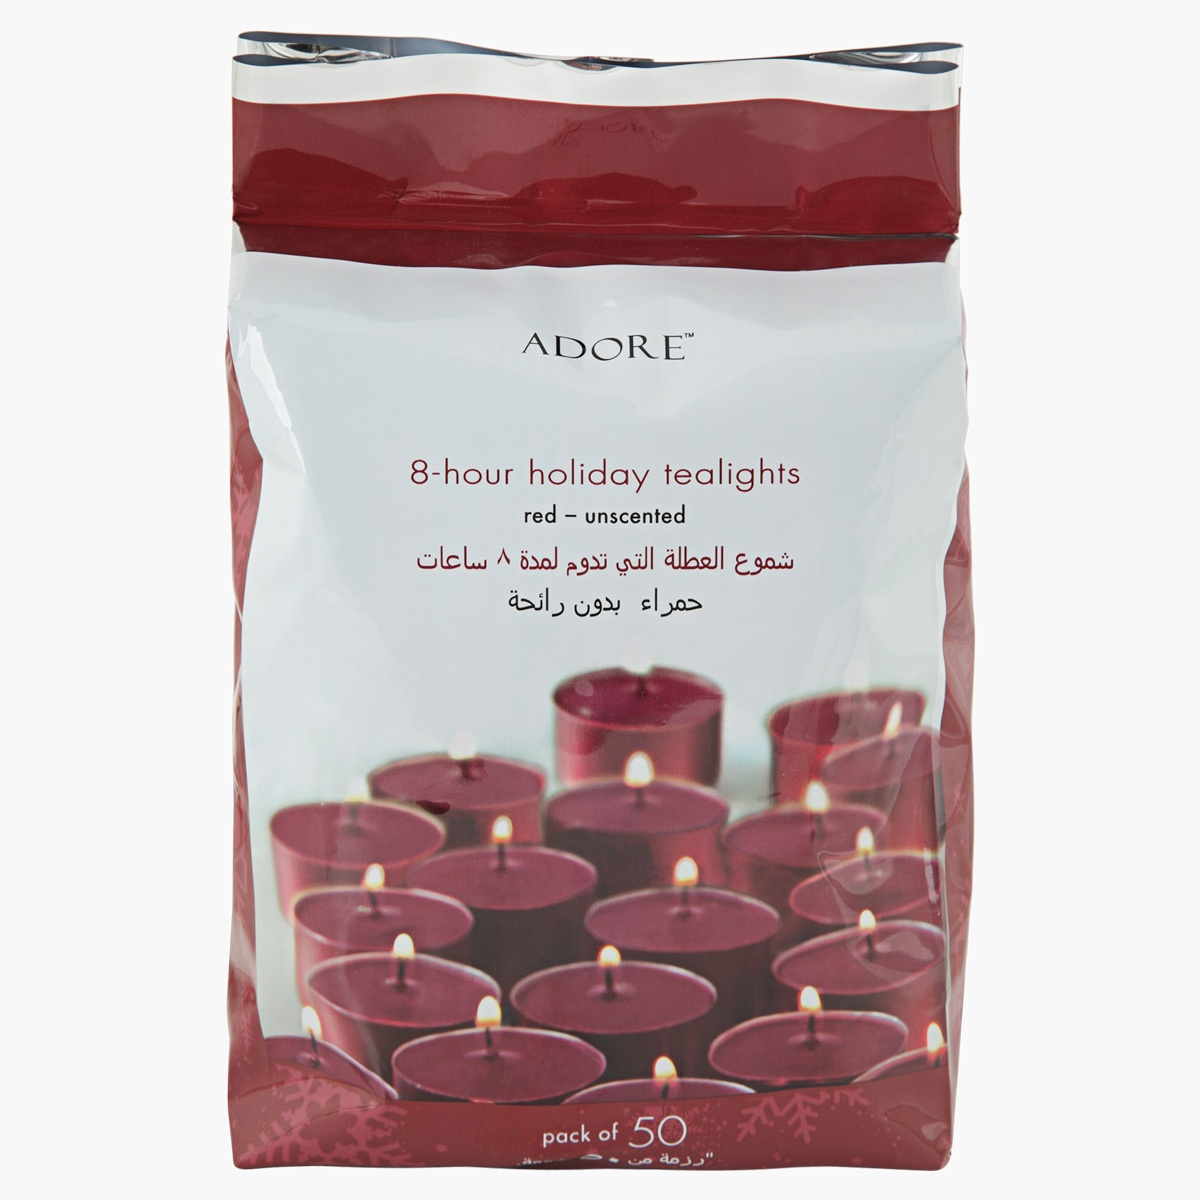 Adore 8-Hour Holiday Tealights